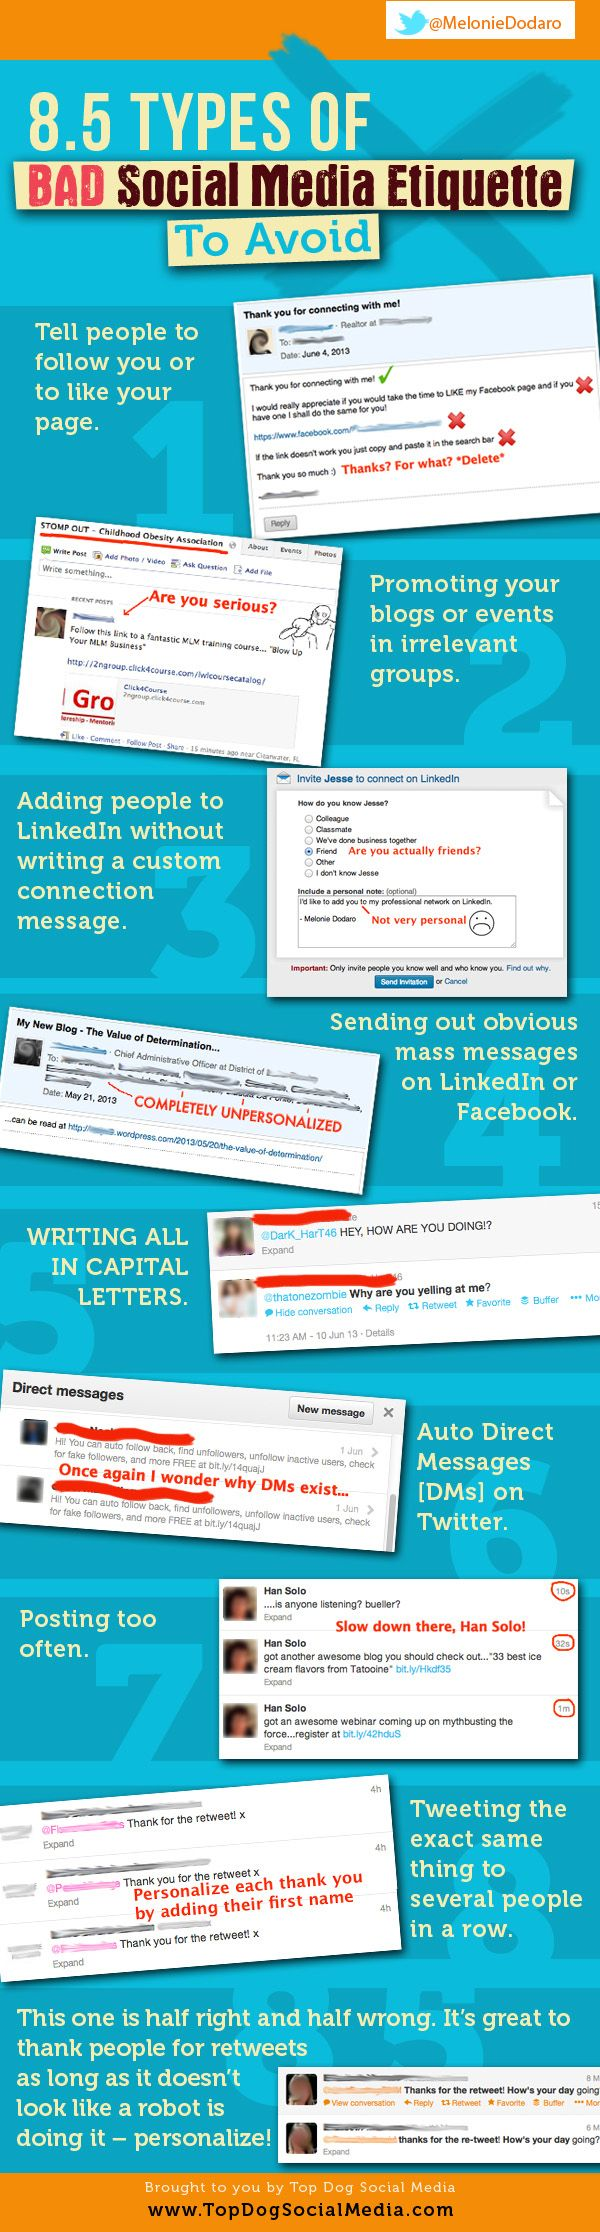 8.5 Types of Bad Social Media Etiquette That Are Ruining Your Strategy #Infographic